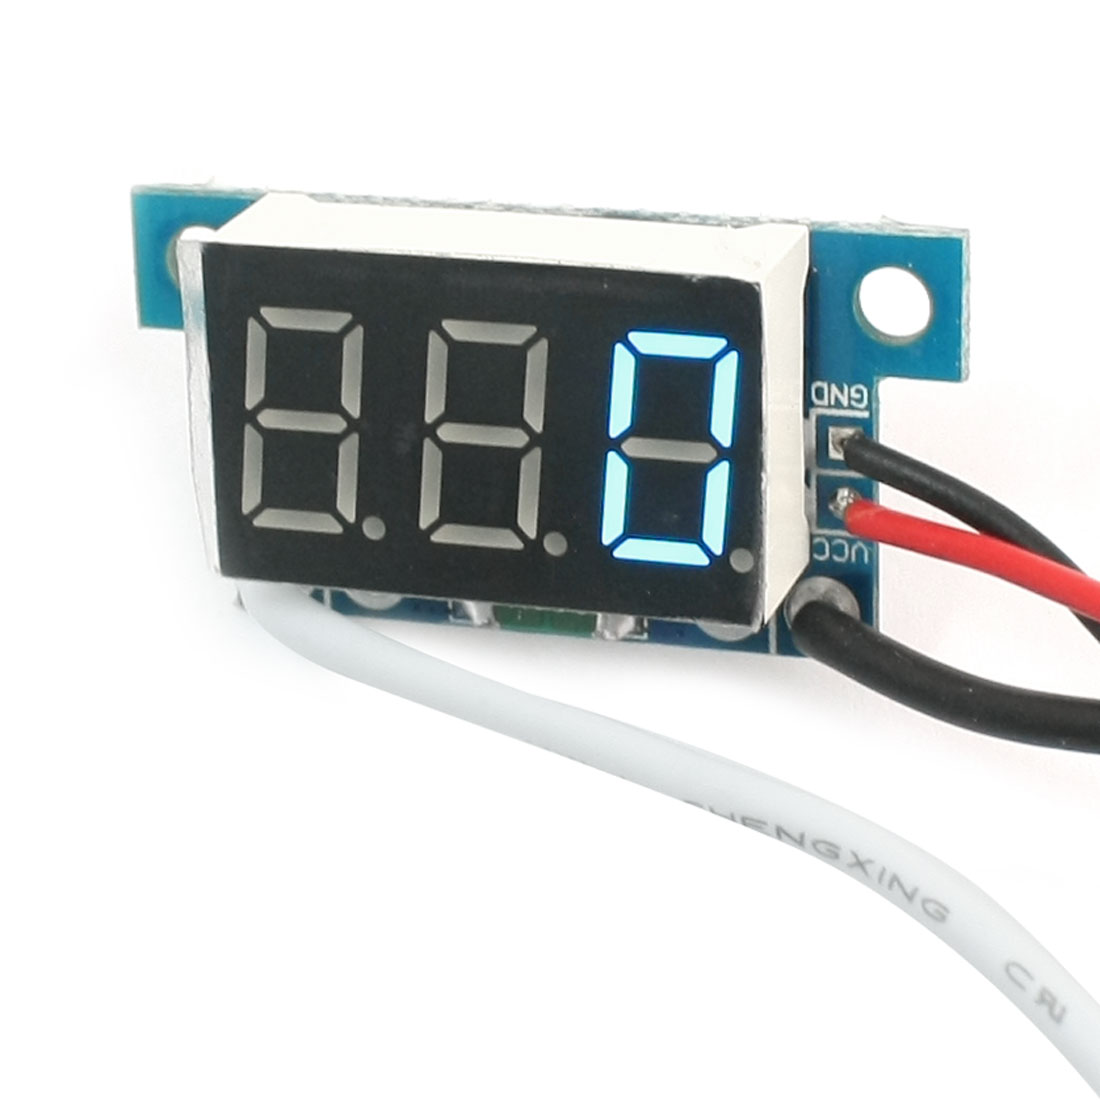 Digital DC 0-1A Blue LCD Display Current Tester Gauge Panel Ammeter Meter